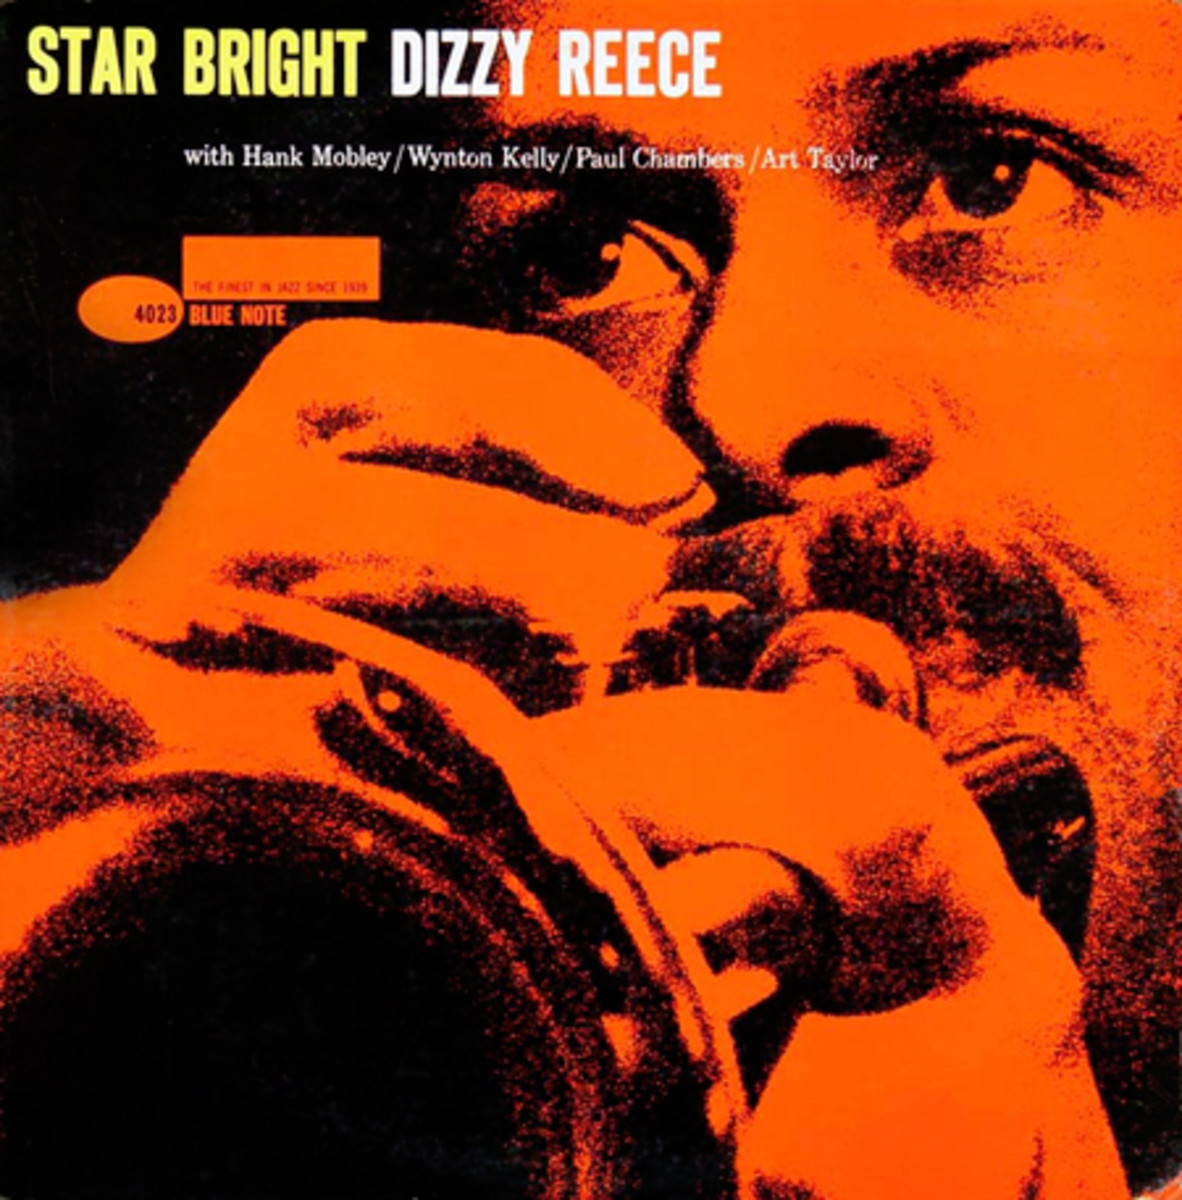 """Dizzy Reece """"Star Bright"""" Blue Note Records 4023 12"""" LP Vinyl Record (1959) Album Cover Design by Reid Miles Photo by Francis Wolff"""